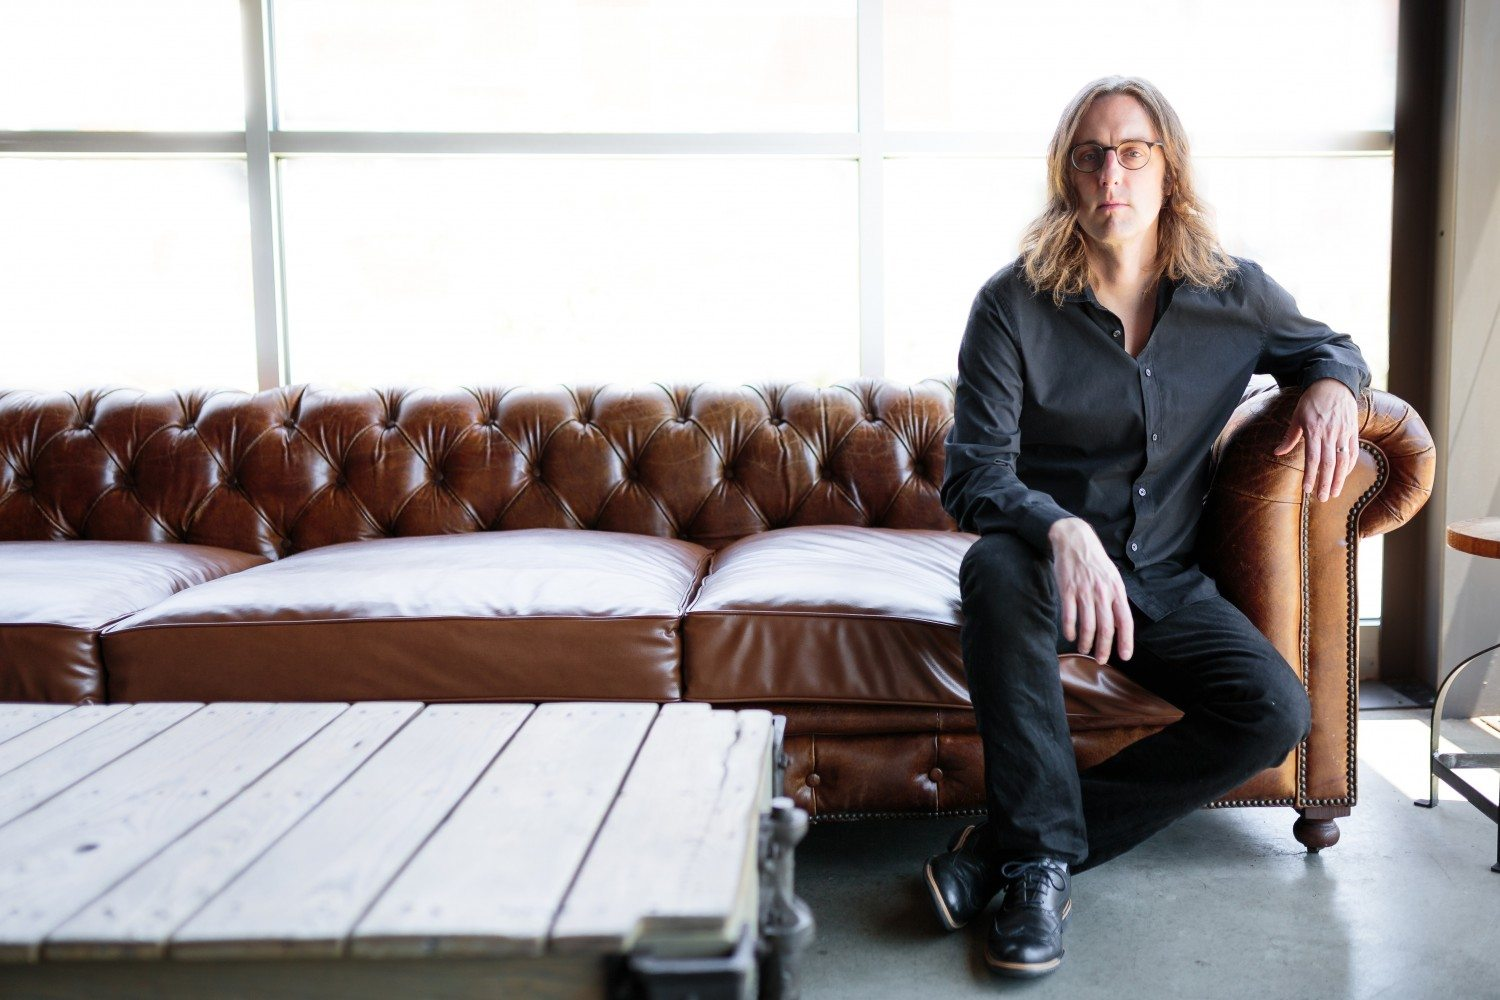 """My Morning Jacket's Carl Broemel talks new solo album """"4th Of July,"""" to play City Winery on Nov. 12 with Dave Simonett"""